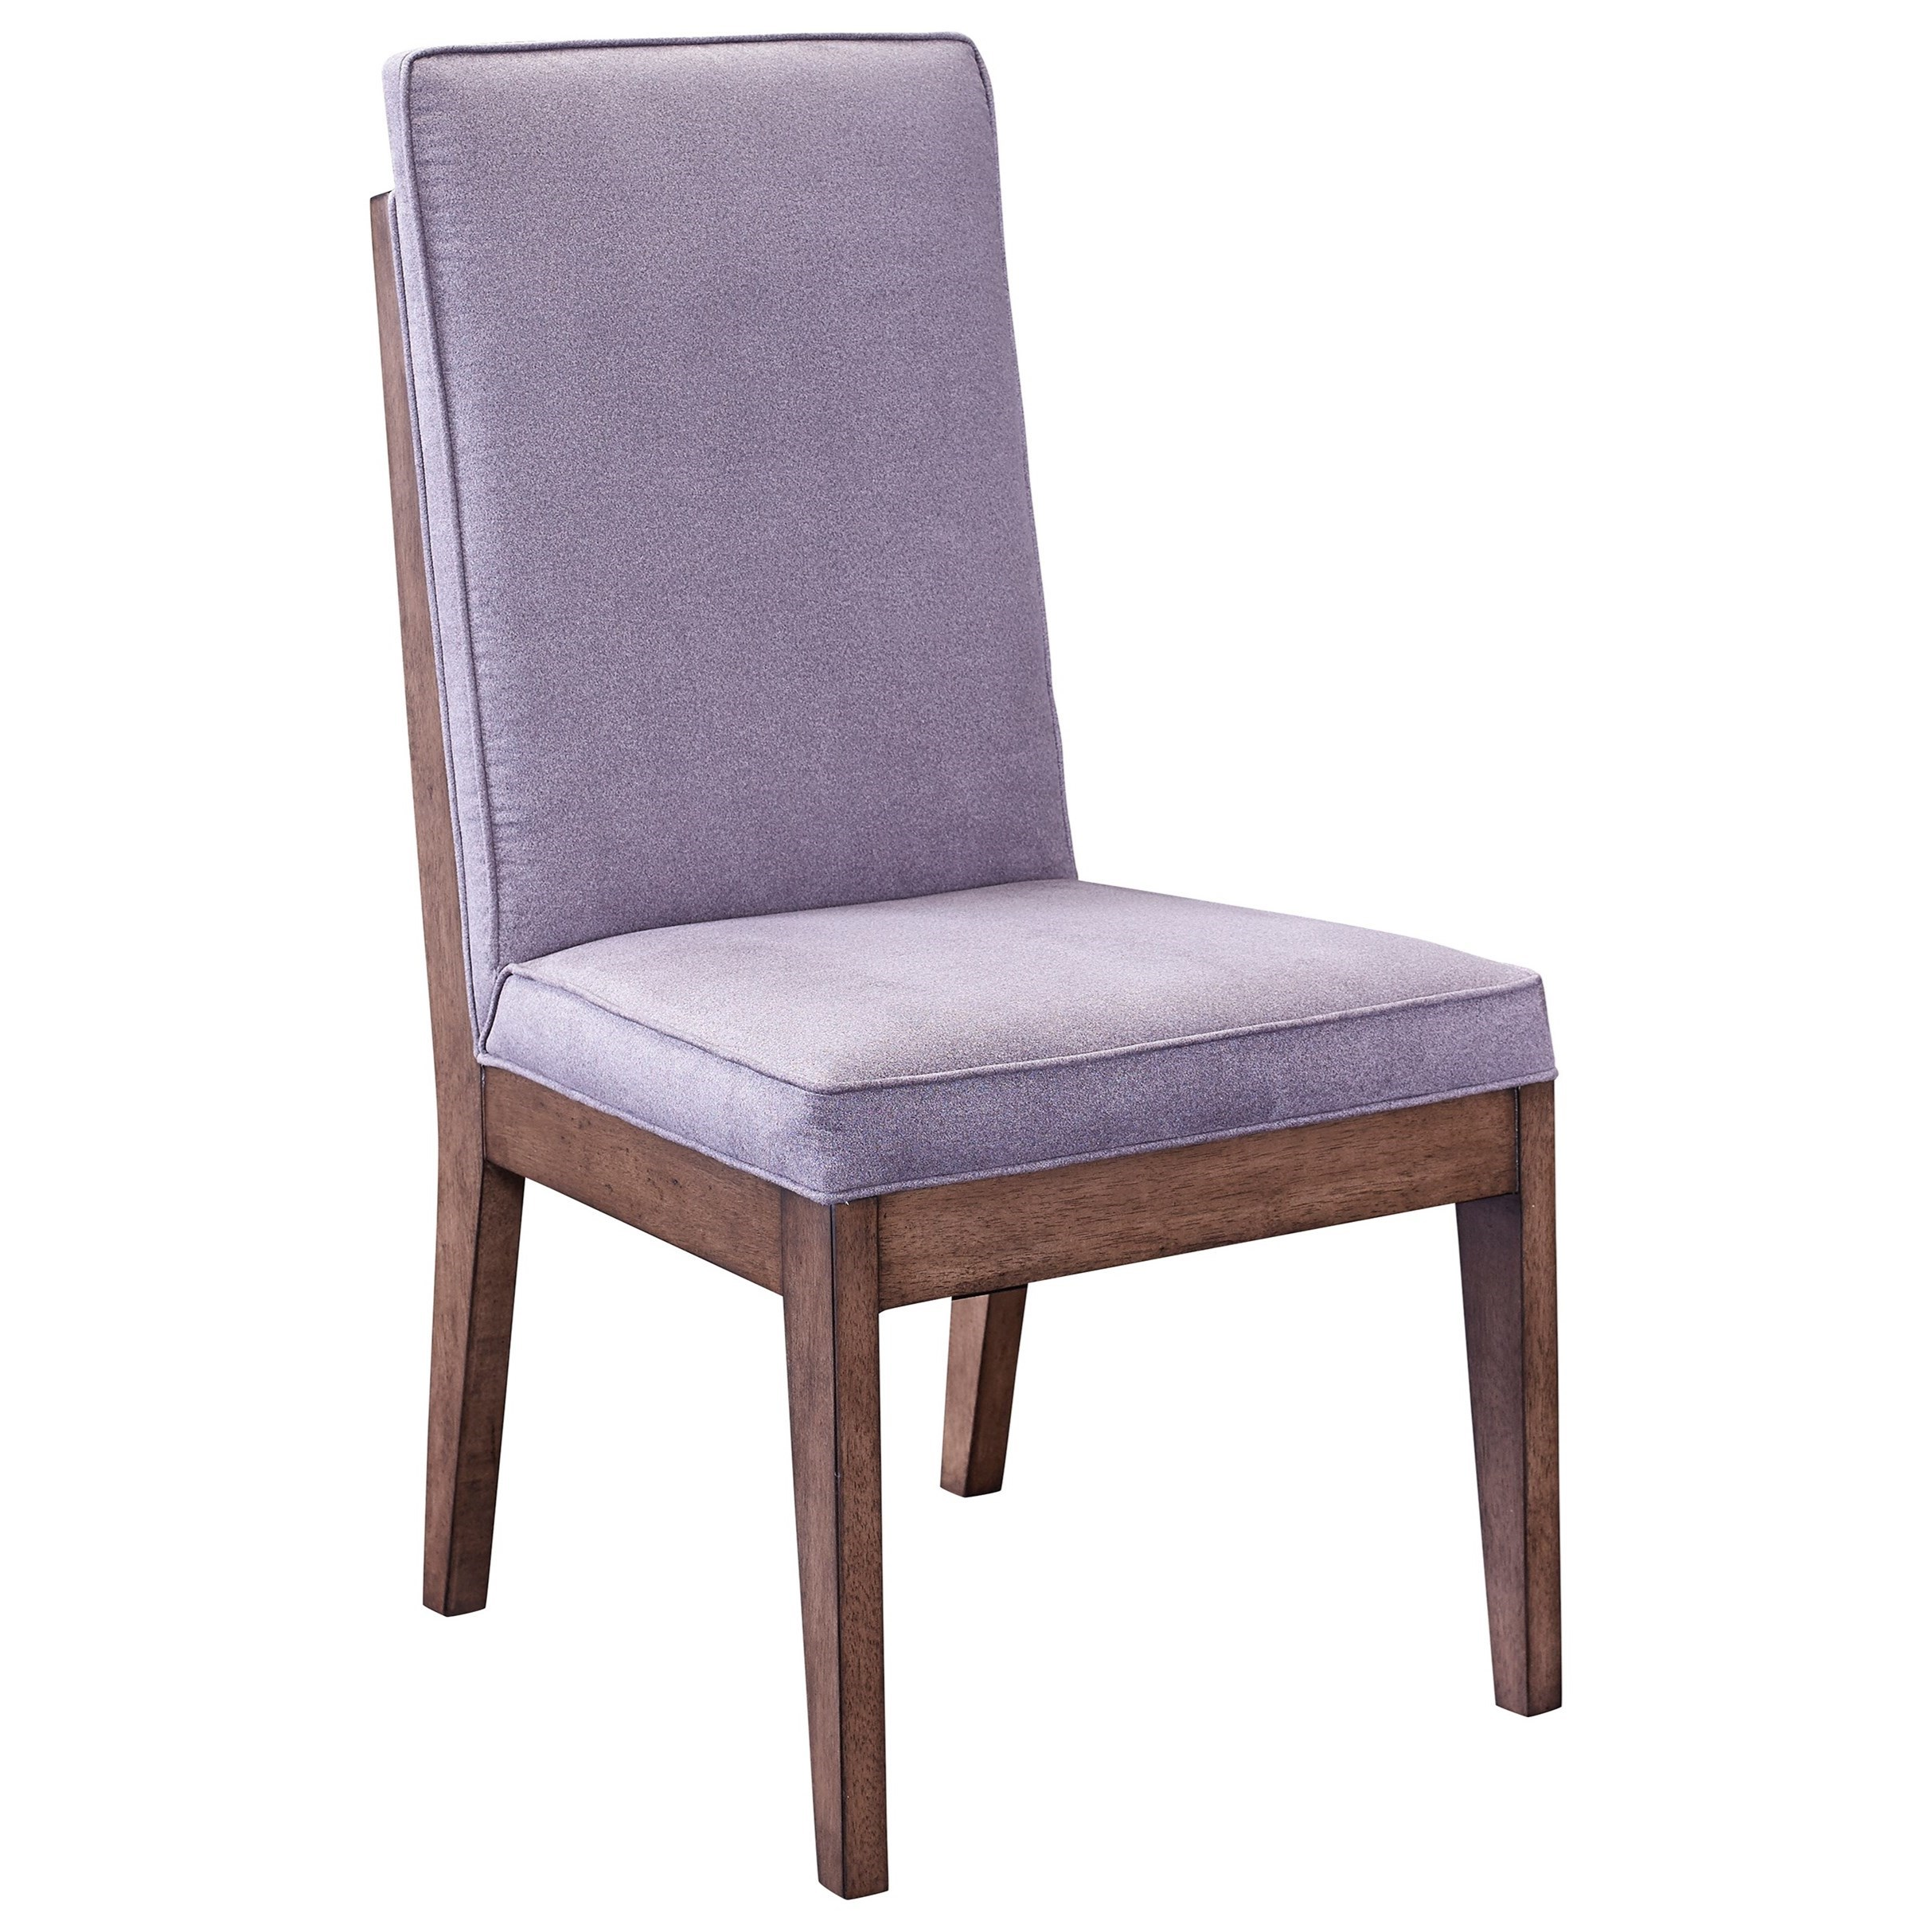 Broyhill Furniture Bedford Avenue Fenimore Street Upholstered Dining Chair - Item Number: 8615-523